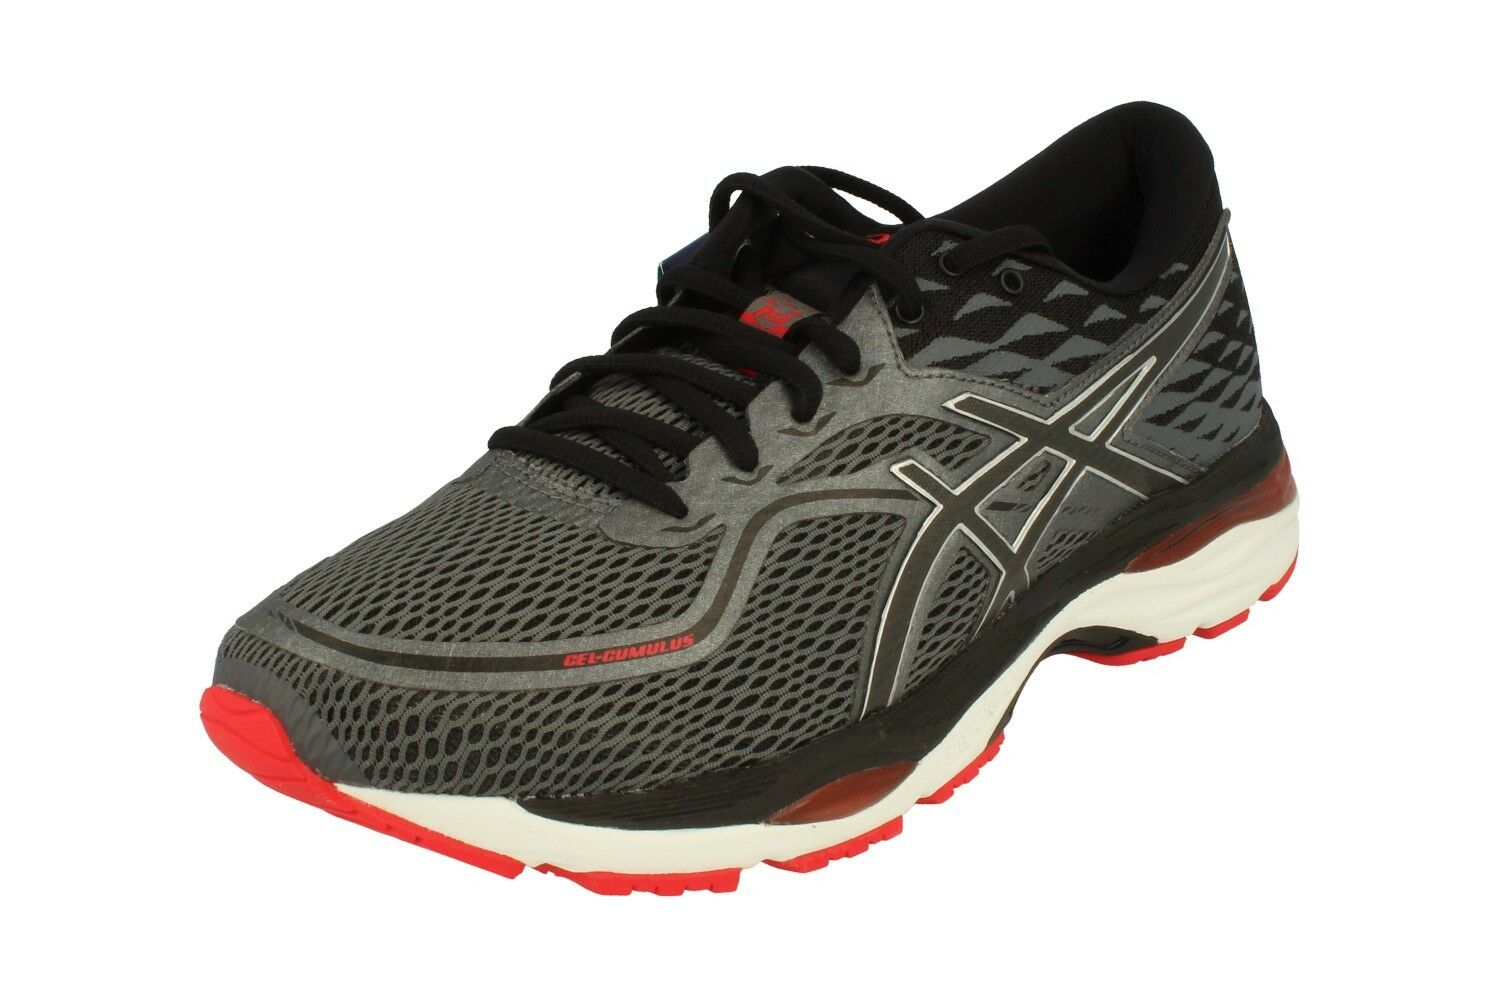 493ec8f1 19 Gel-Cumulus Asics Mens 9097 shoes Sneakers T7B3N Trainers Running ...